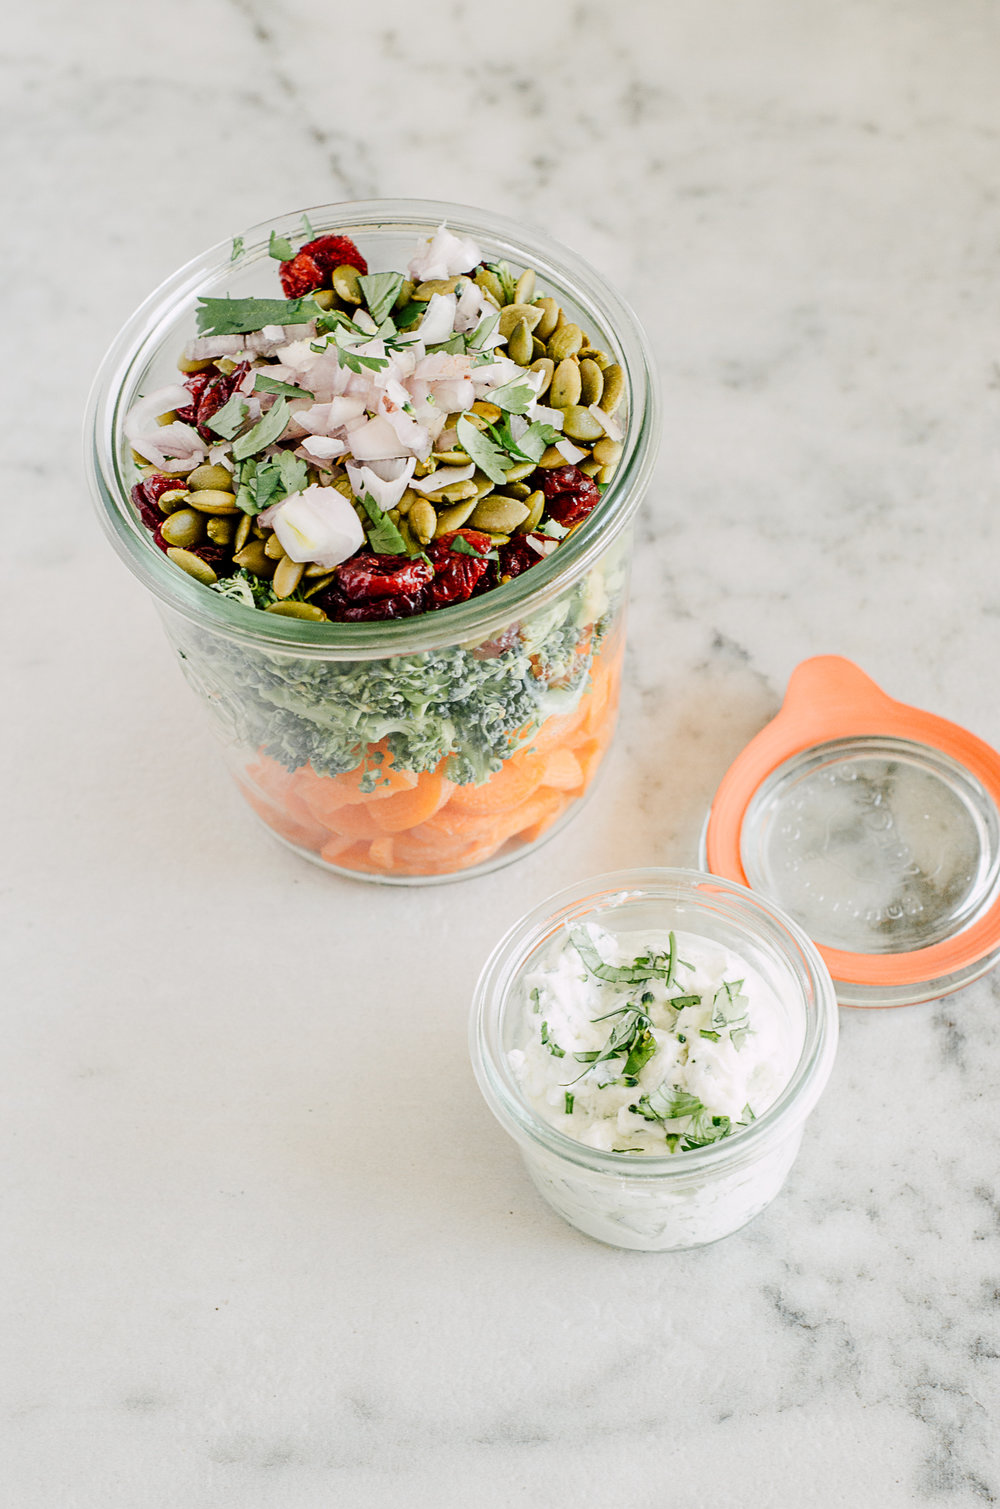 easy carrot & broccoli salad recipe with a creamy yogurt dressing - the nomadic wife